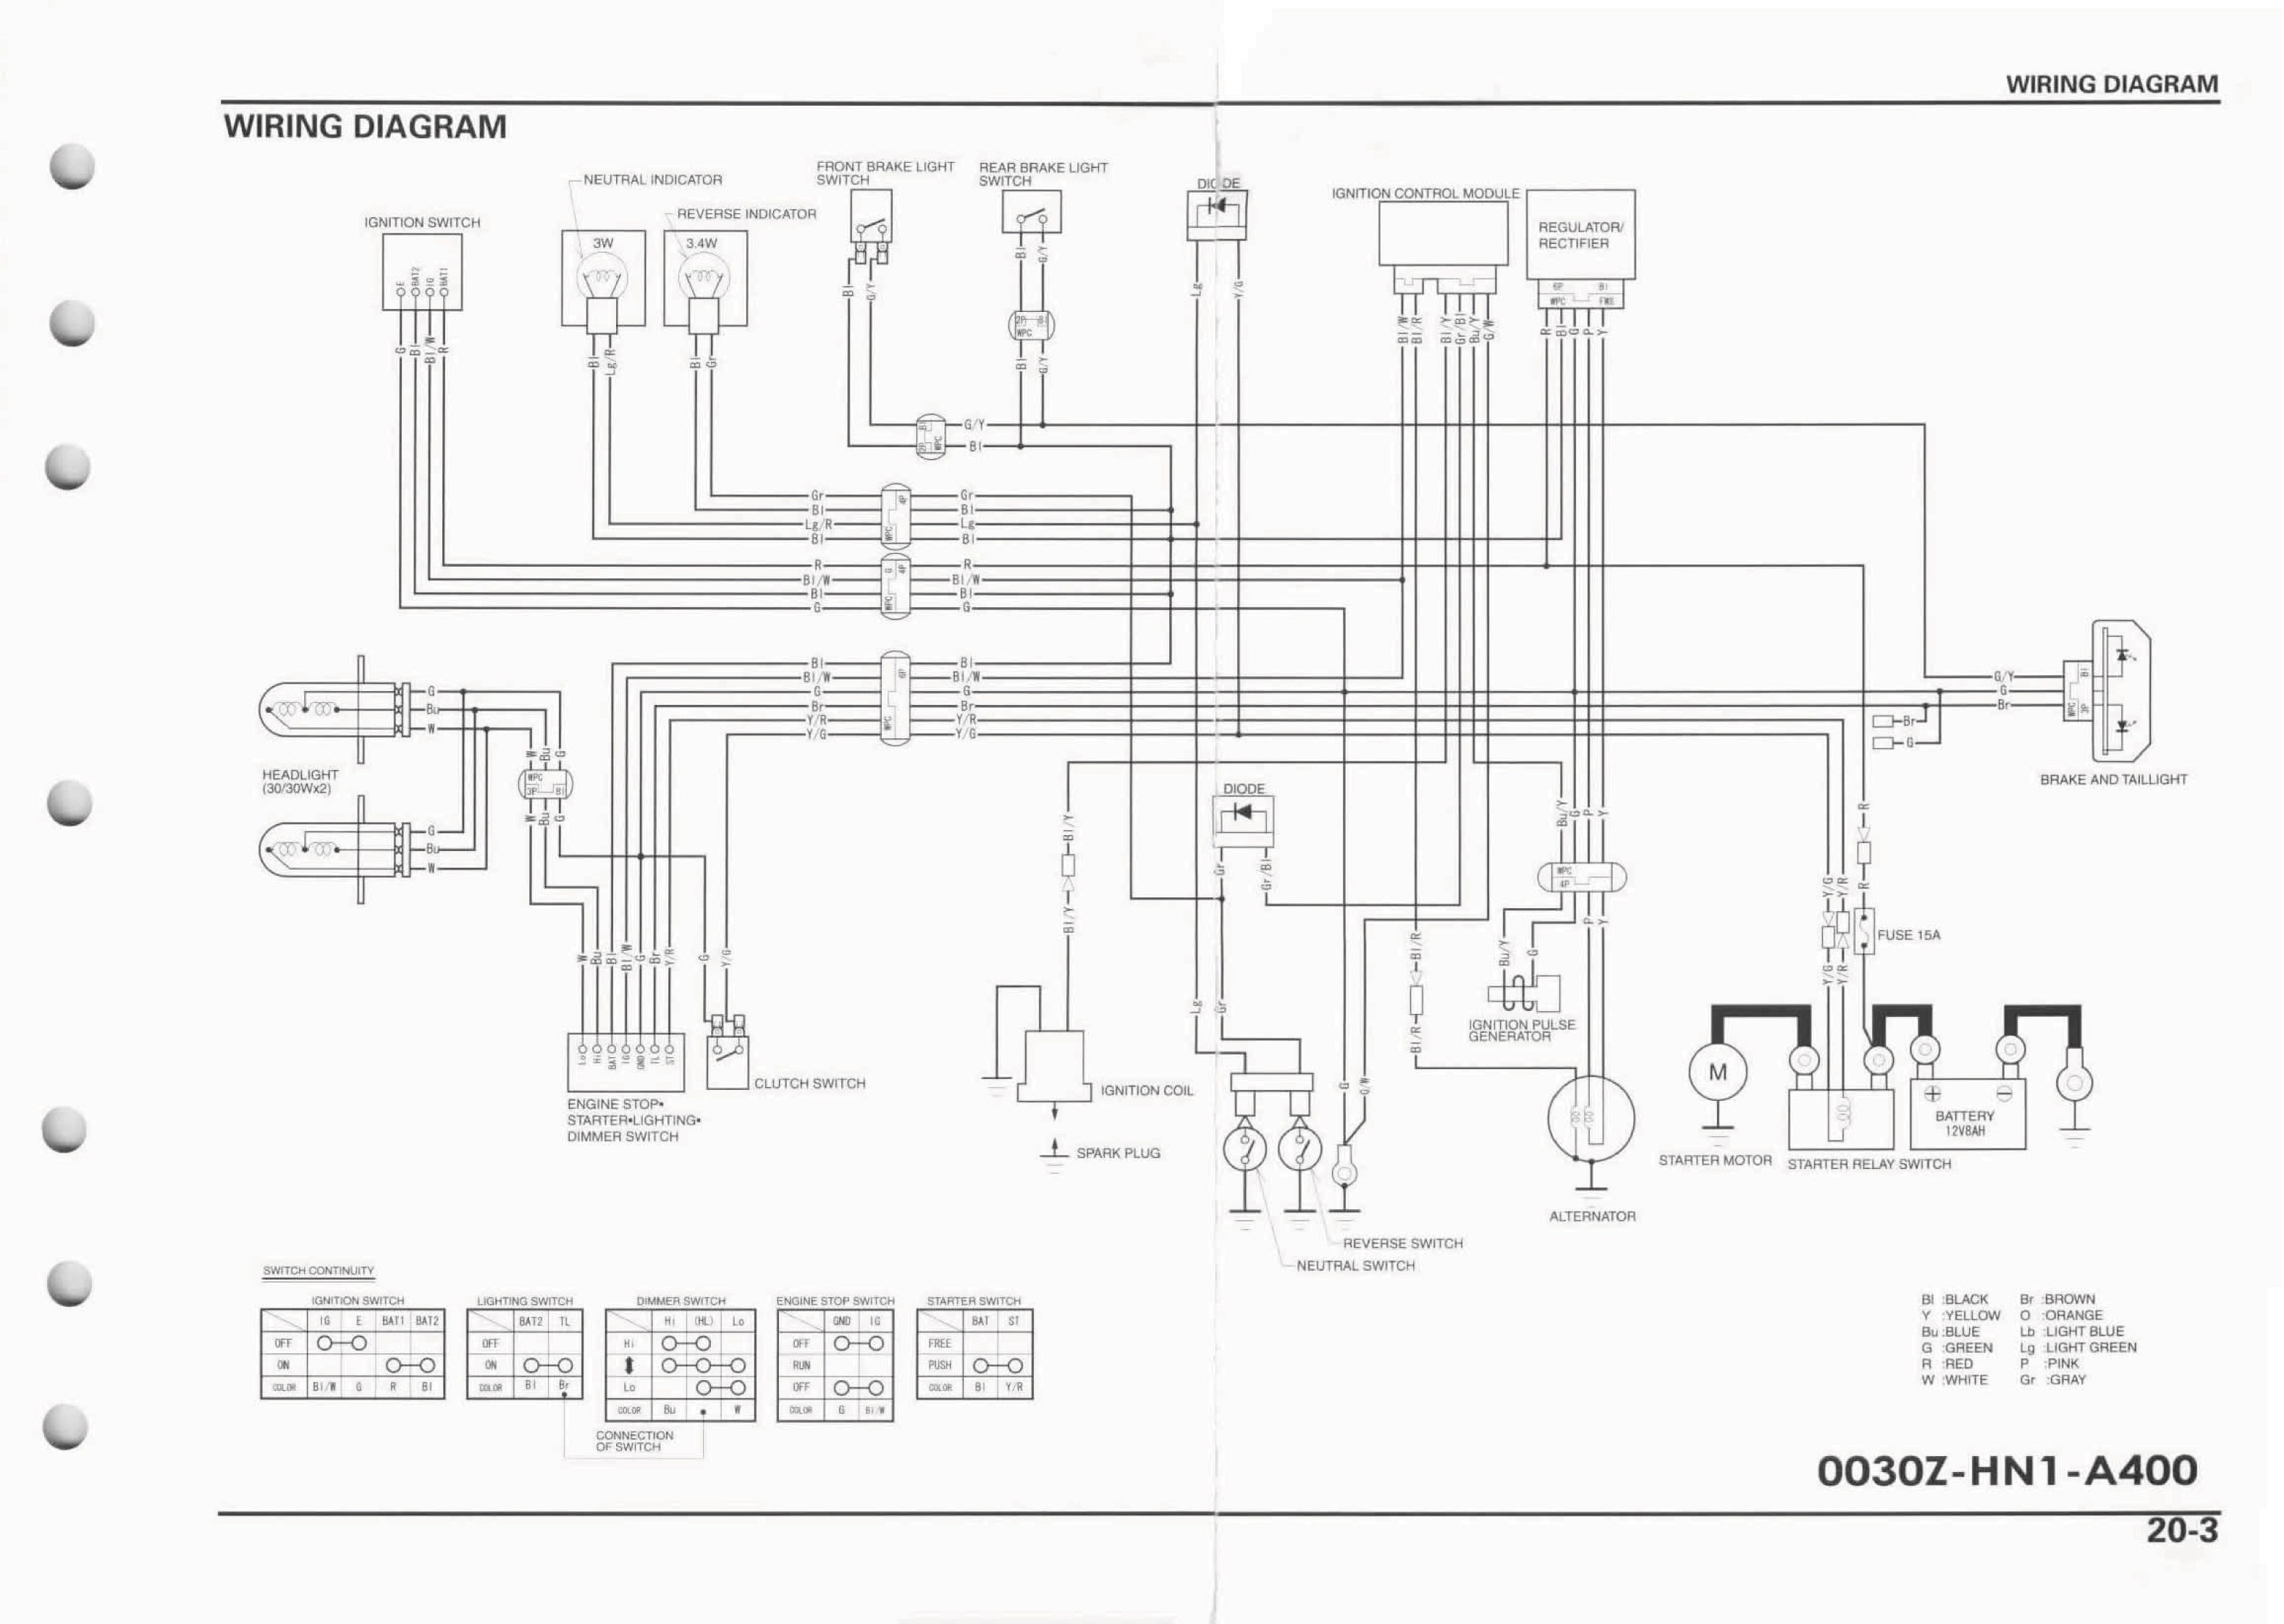 Wiring Diagram: 29 2001 Honda 400ex Wiring Diagram